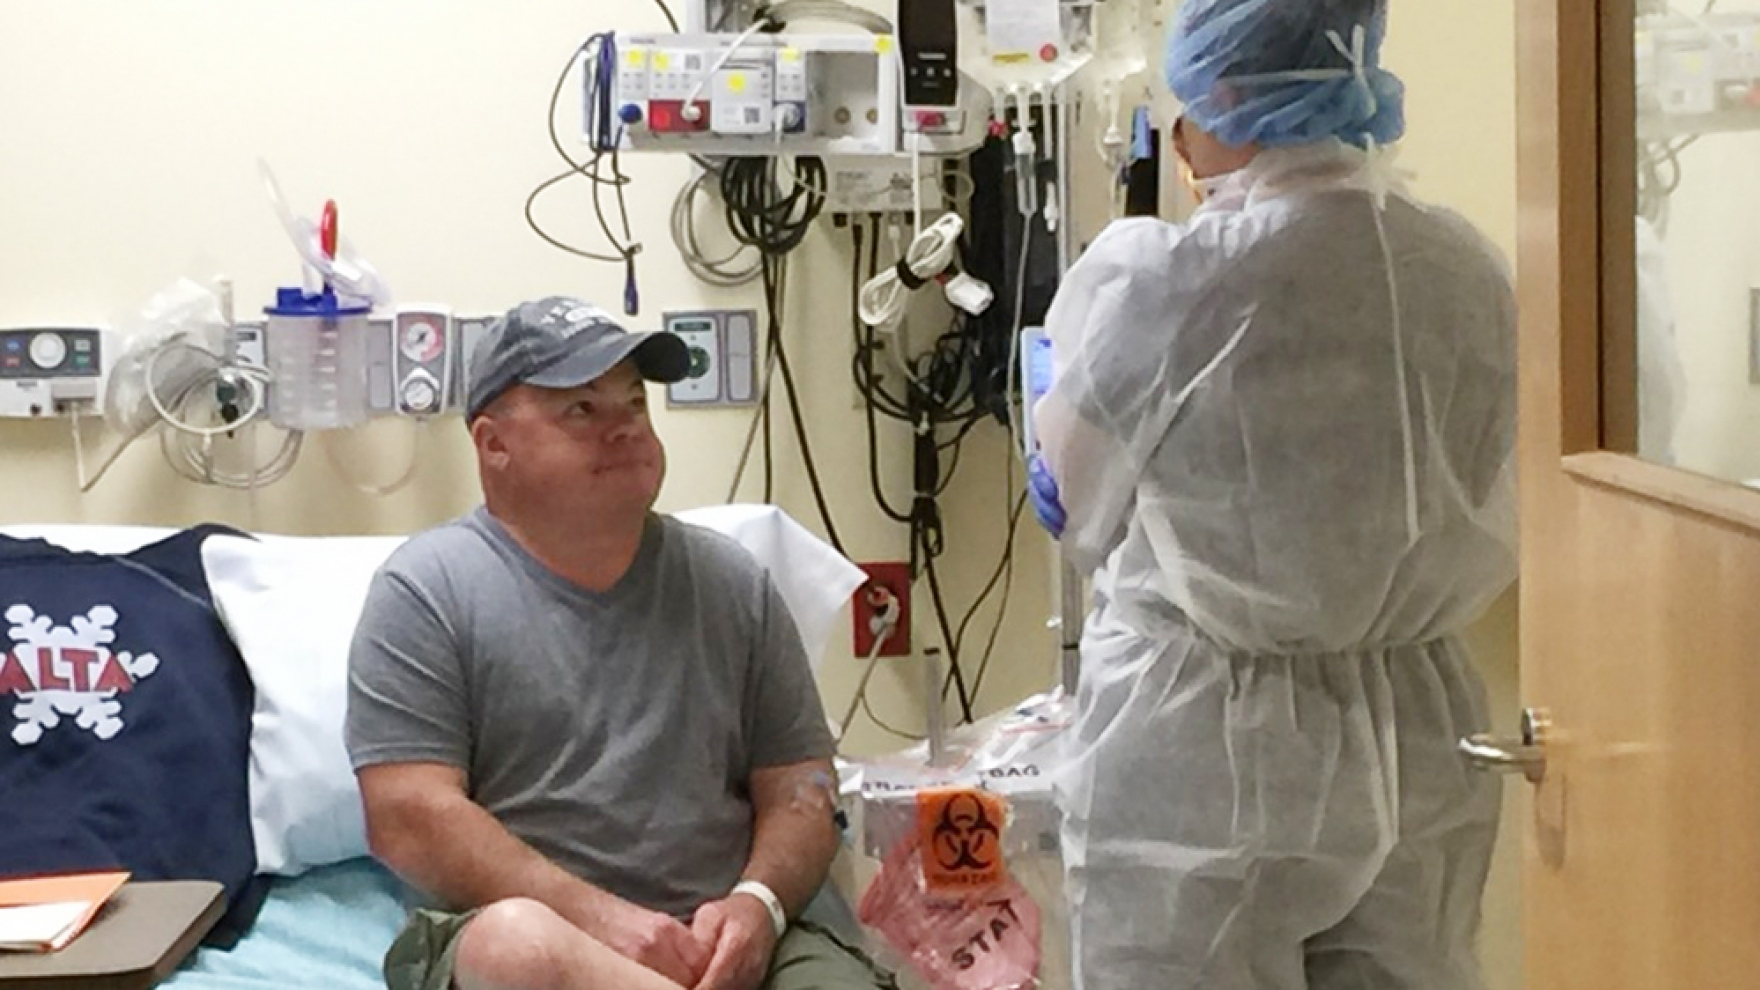 Brian Madeux receives an infusion of a gene-editing therapy meant to fix an error in his DNA